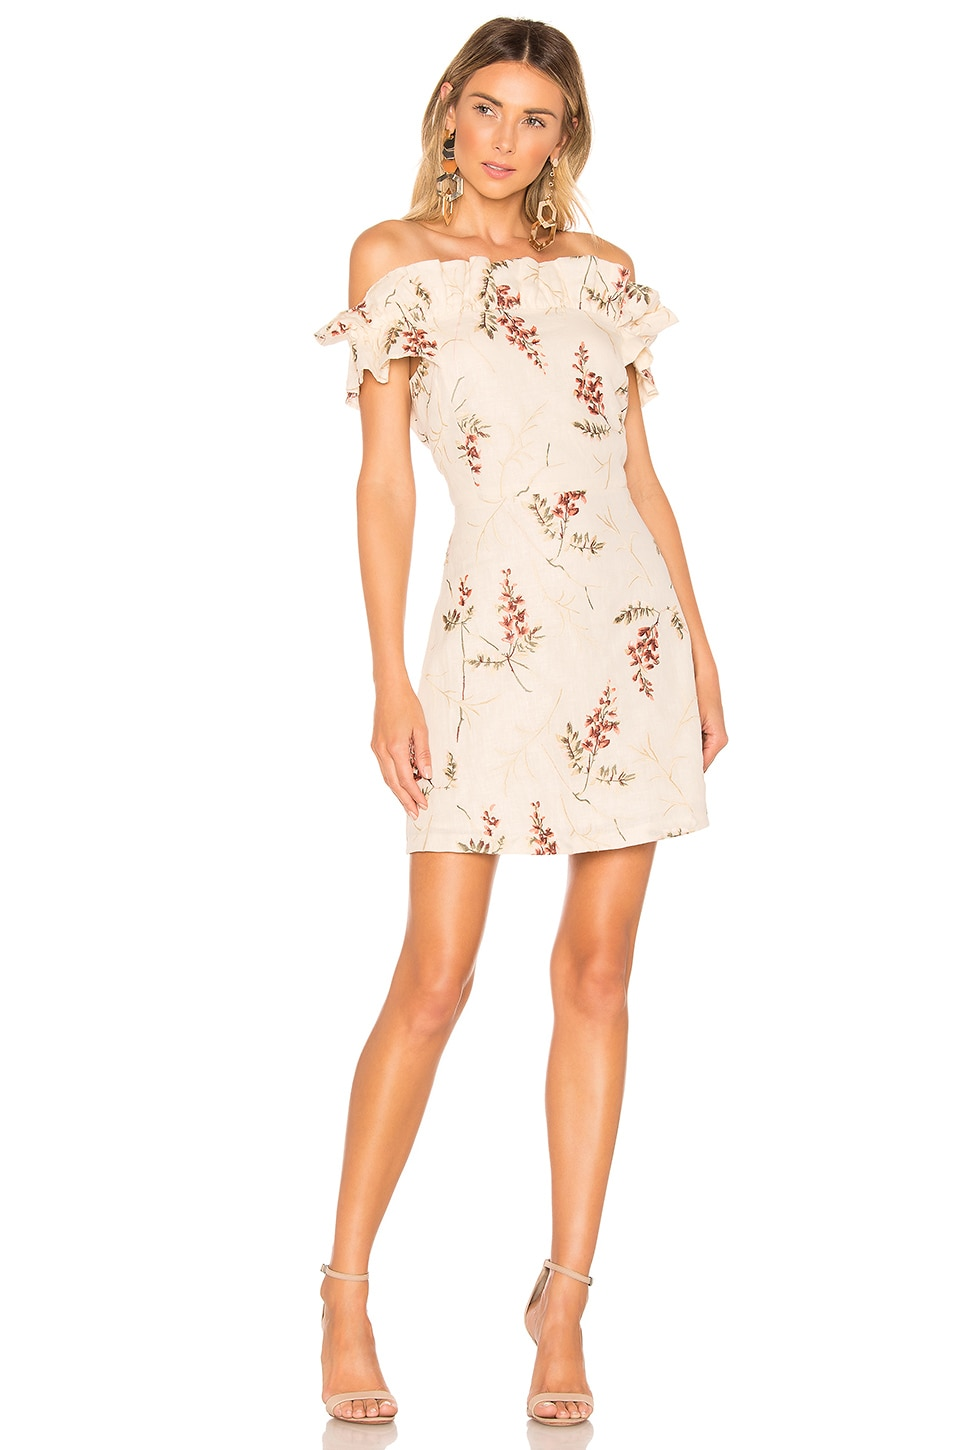 Rebecca Taylor Ivie Embroidered Dress in Cream Combo